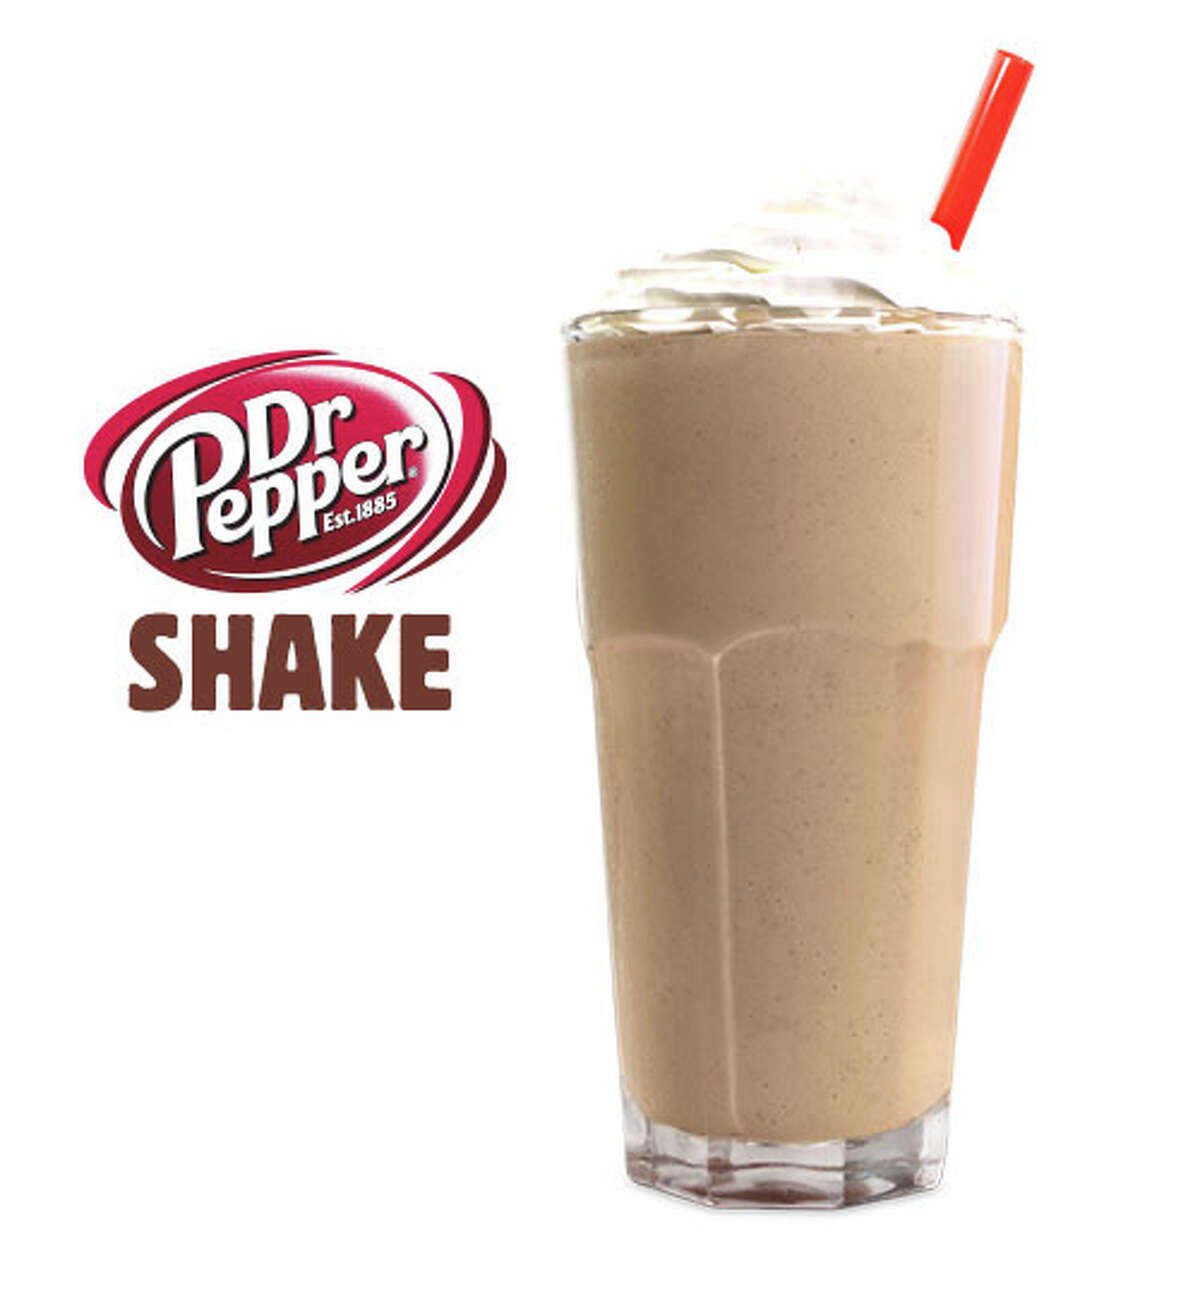 Burger King now has a Dr Pepper shake. So it's like a root beer float. But blended. With Dr Pepper, not root beer.